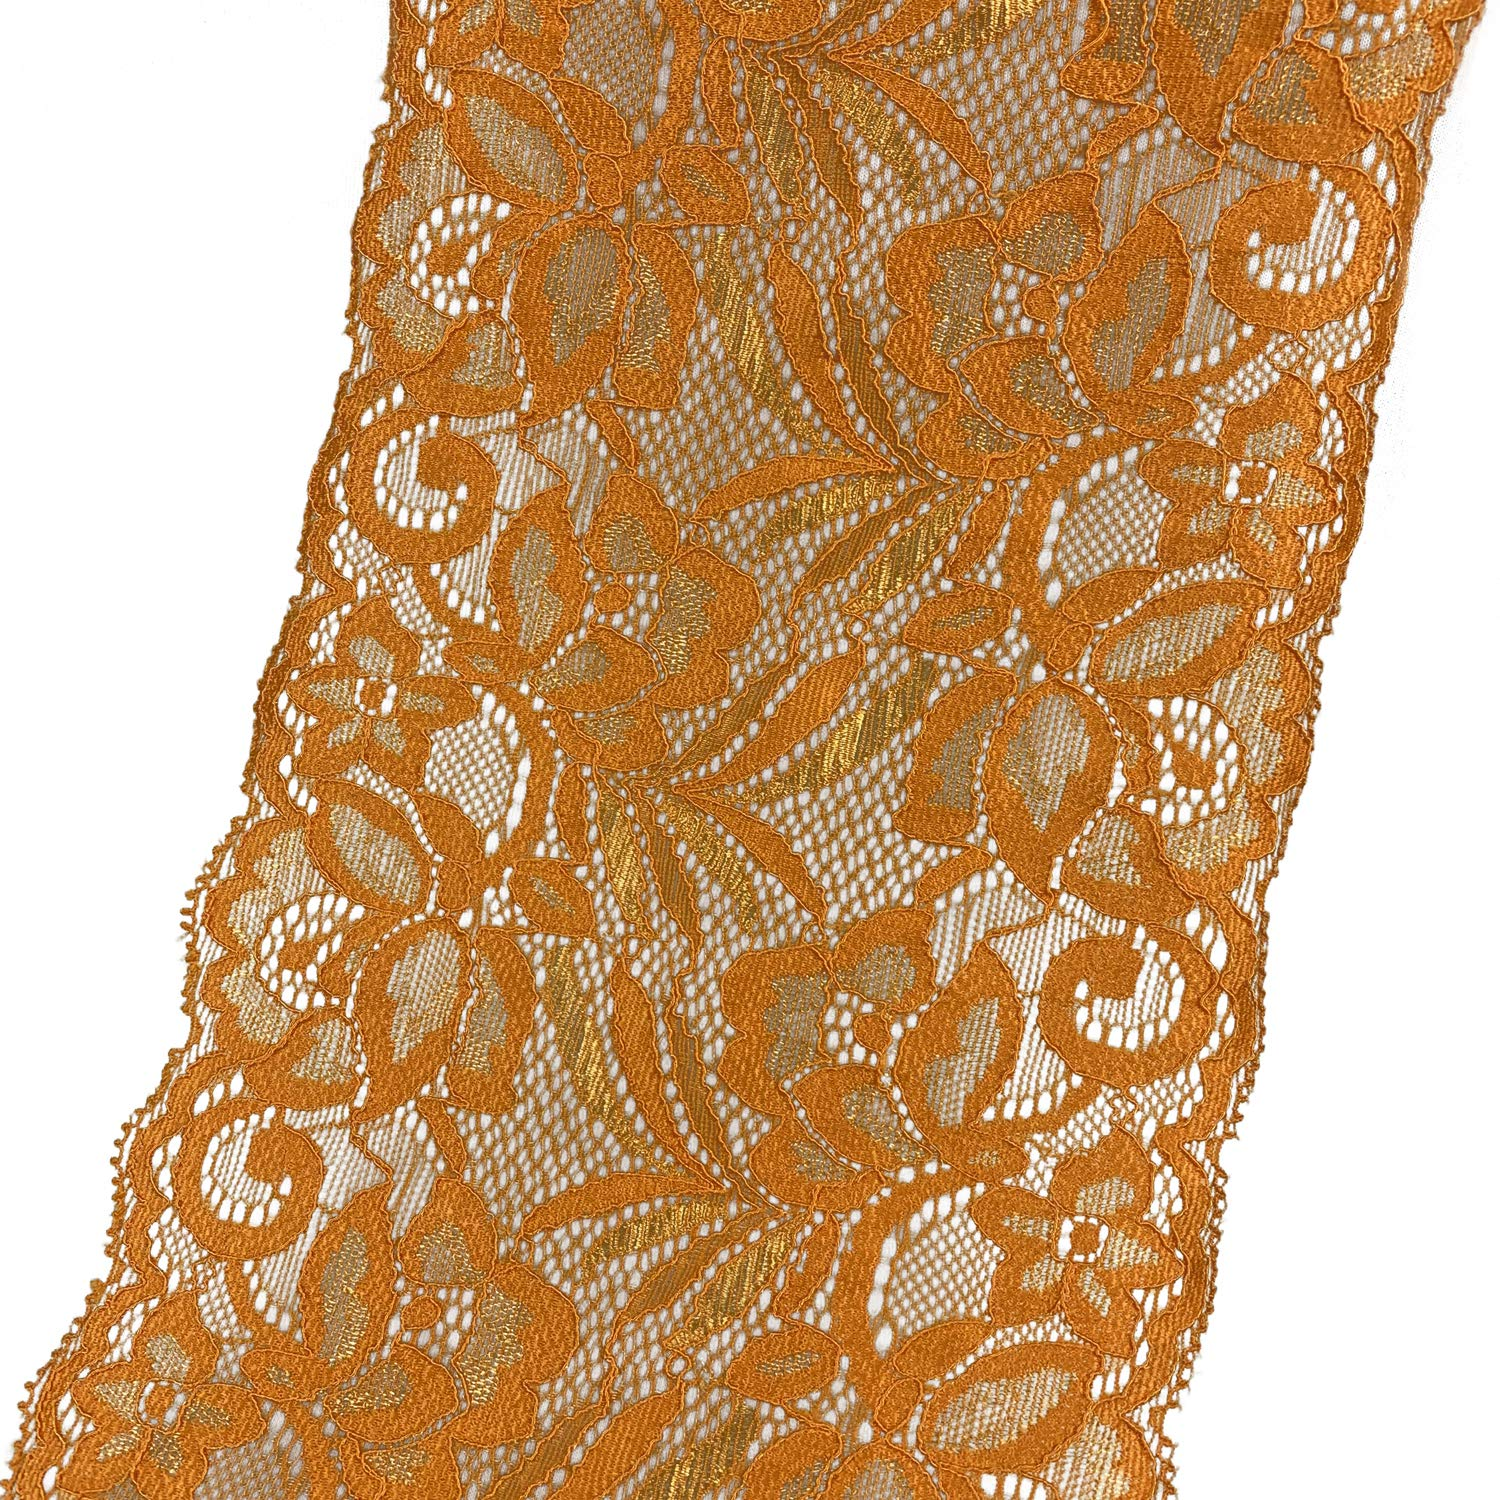 Width Stretch Polyester Embroidery Floral Pattern Elastic Lace Trimming DTY Craft Supply Clothing Accessories 10 Yards 5.9 15CM Orange